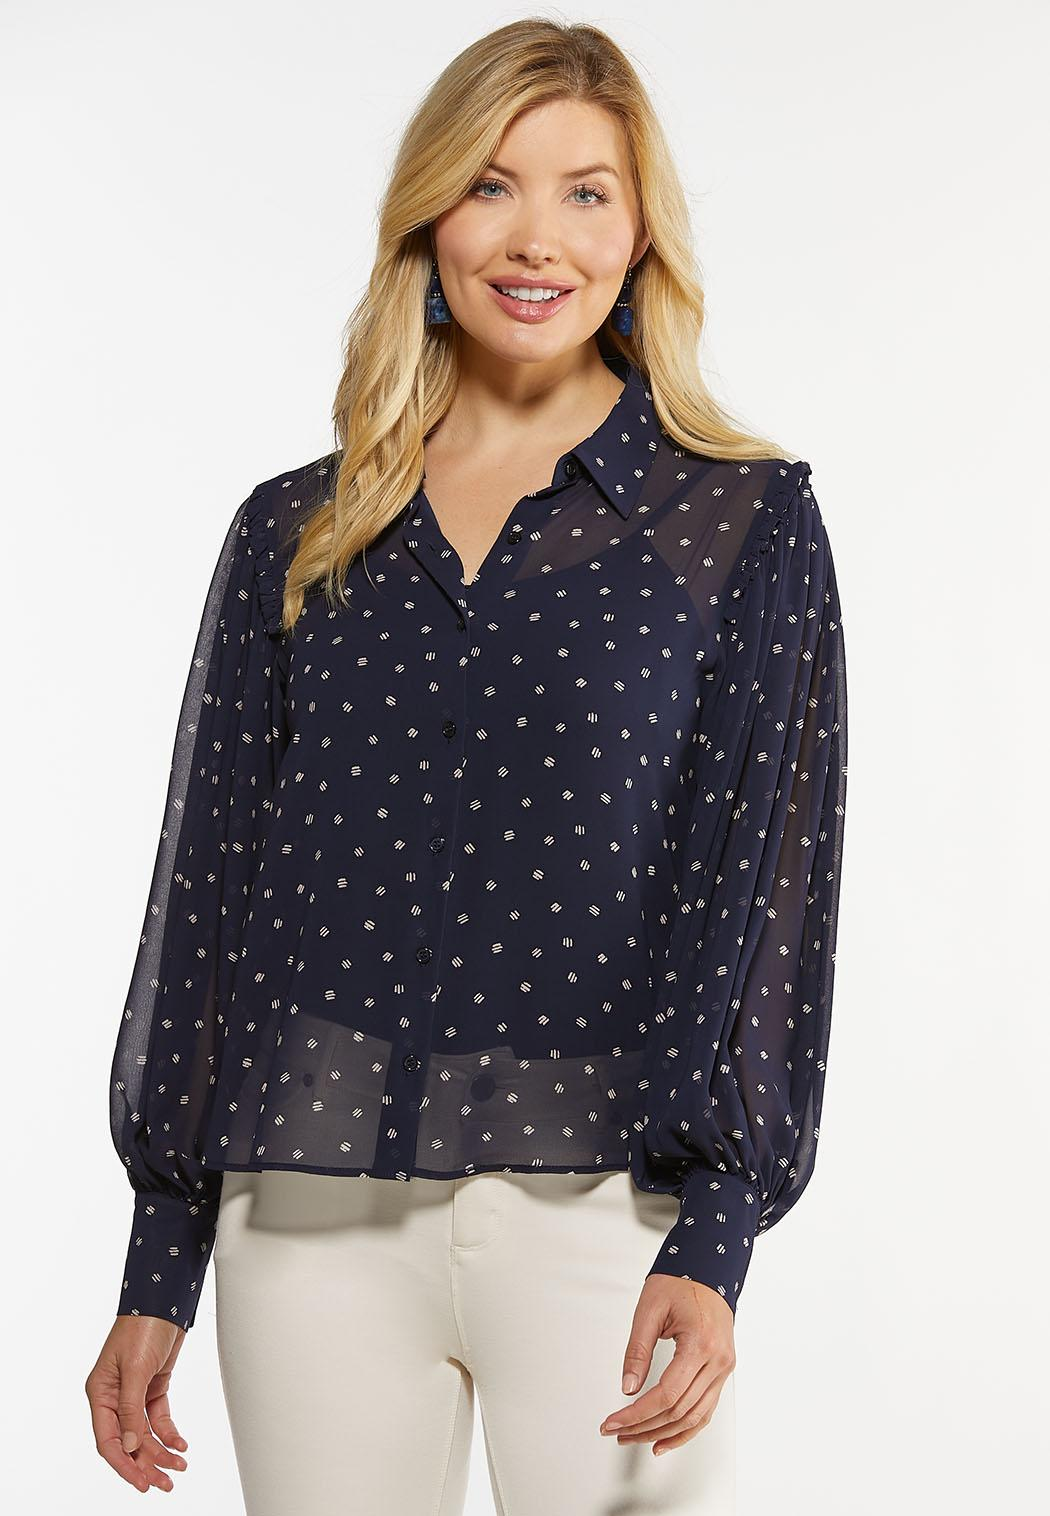 Dotted Dash Top